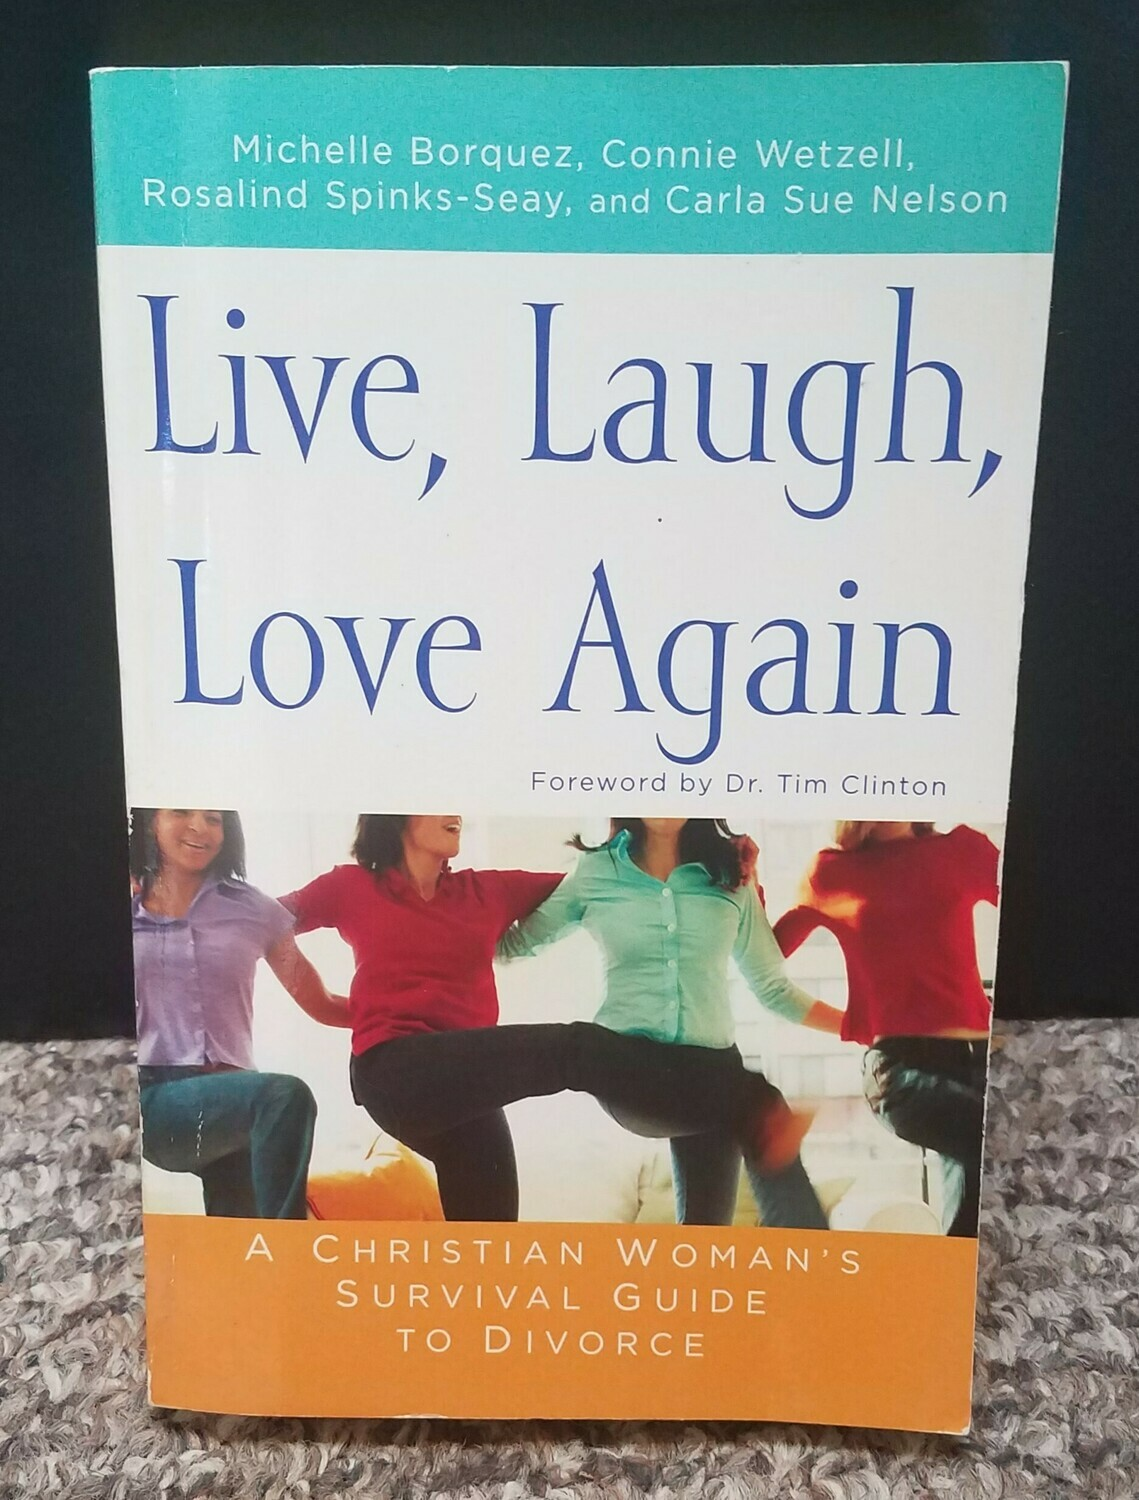 Live, Laugh, Love Again by Michelle Borquez, Connie Wetzell, Rosalind Spinks-Seay, and Carla Sue Nelson